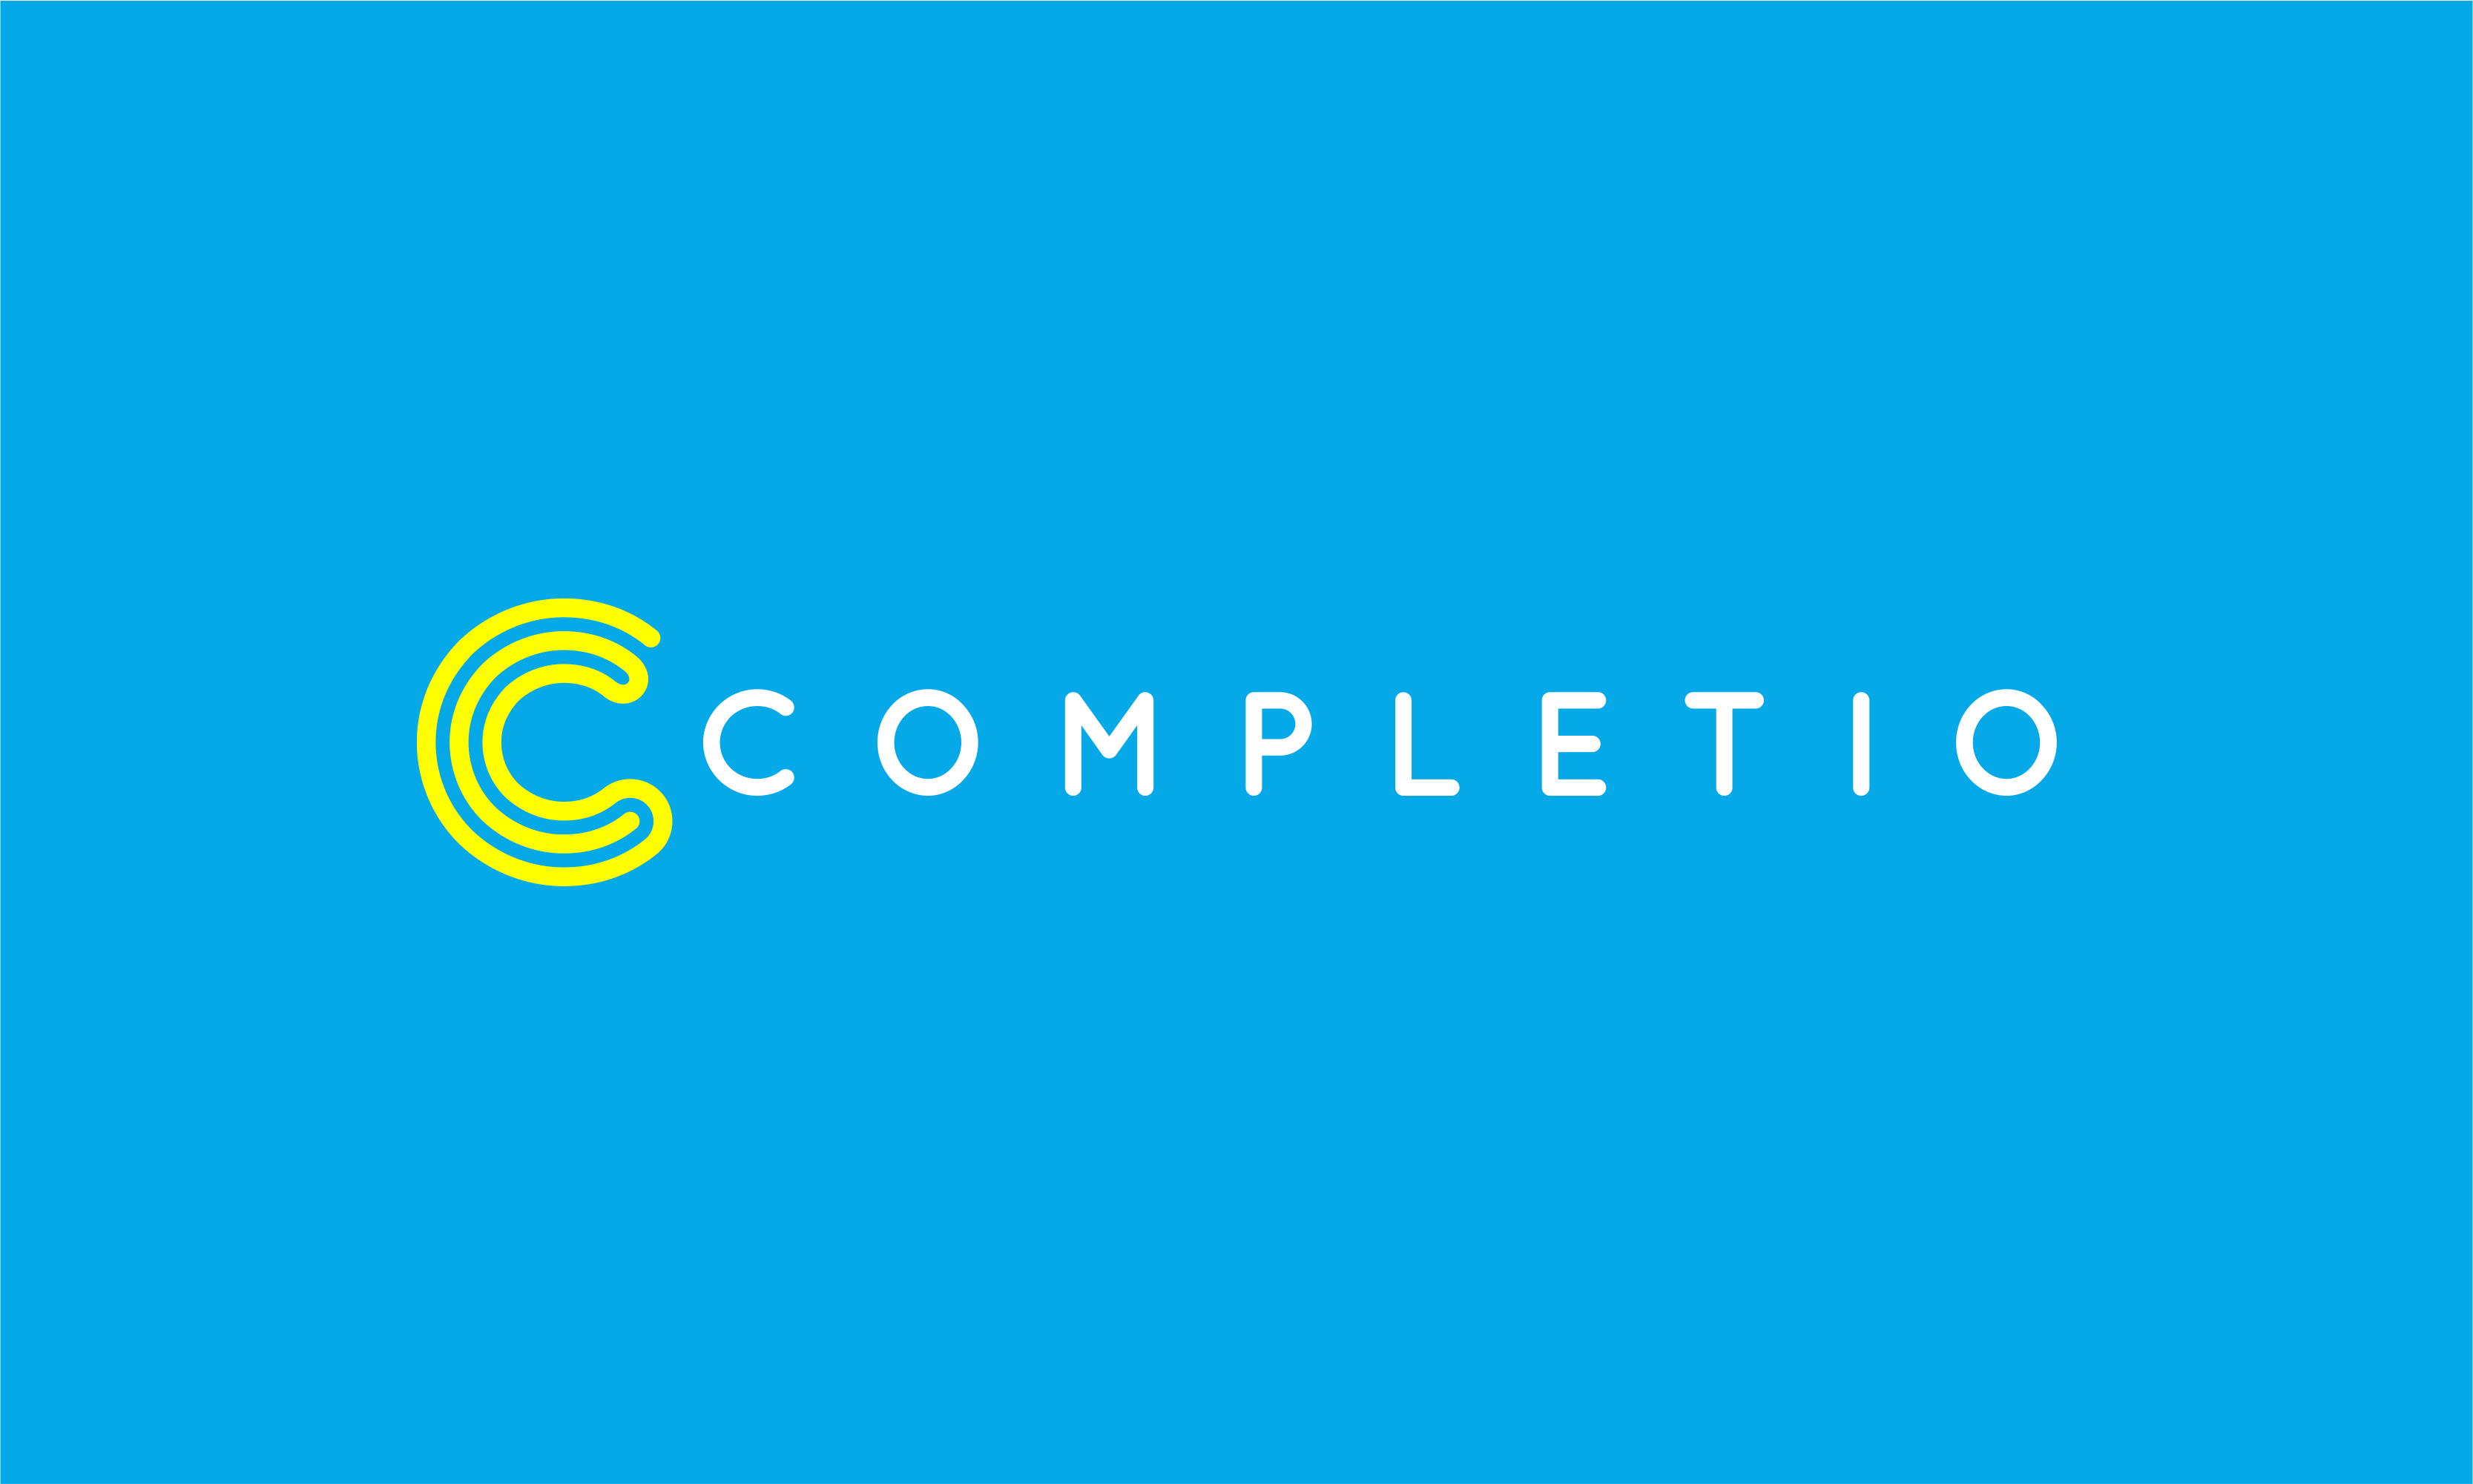 completio logo